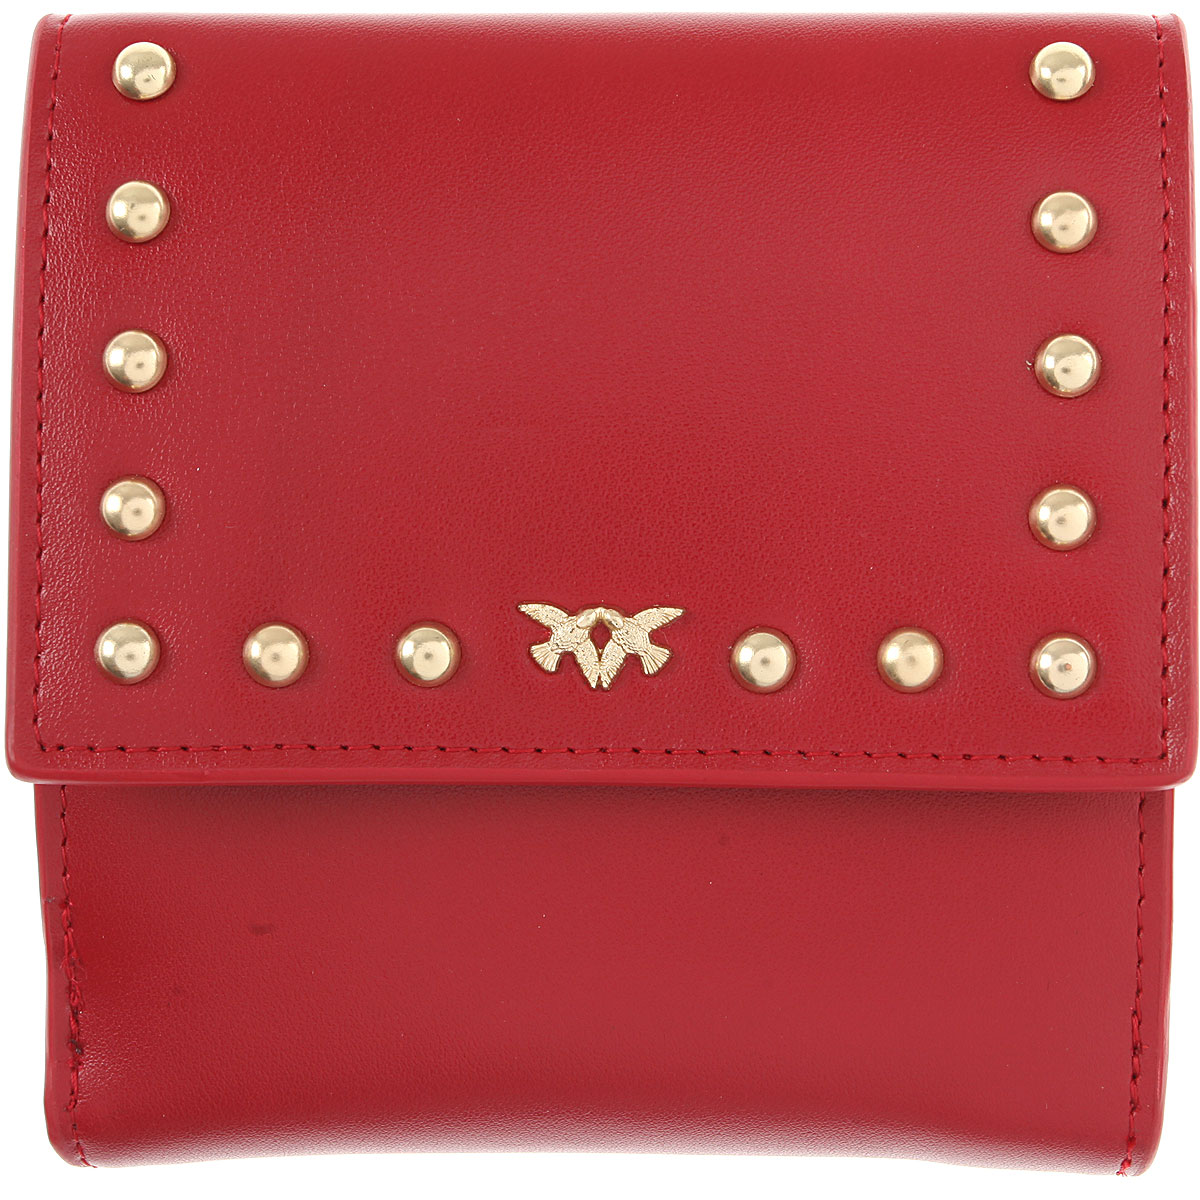 Image of Pinko Wallet for Women, Red, Leather, 2017